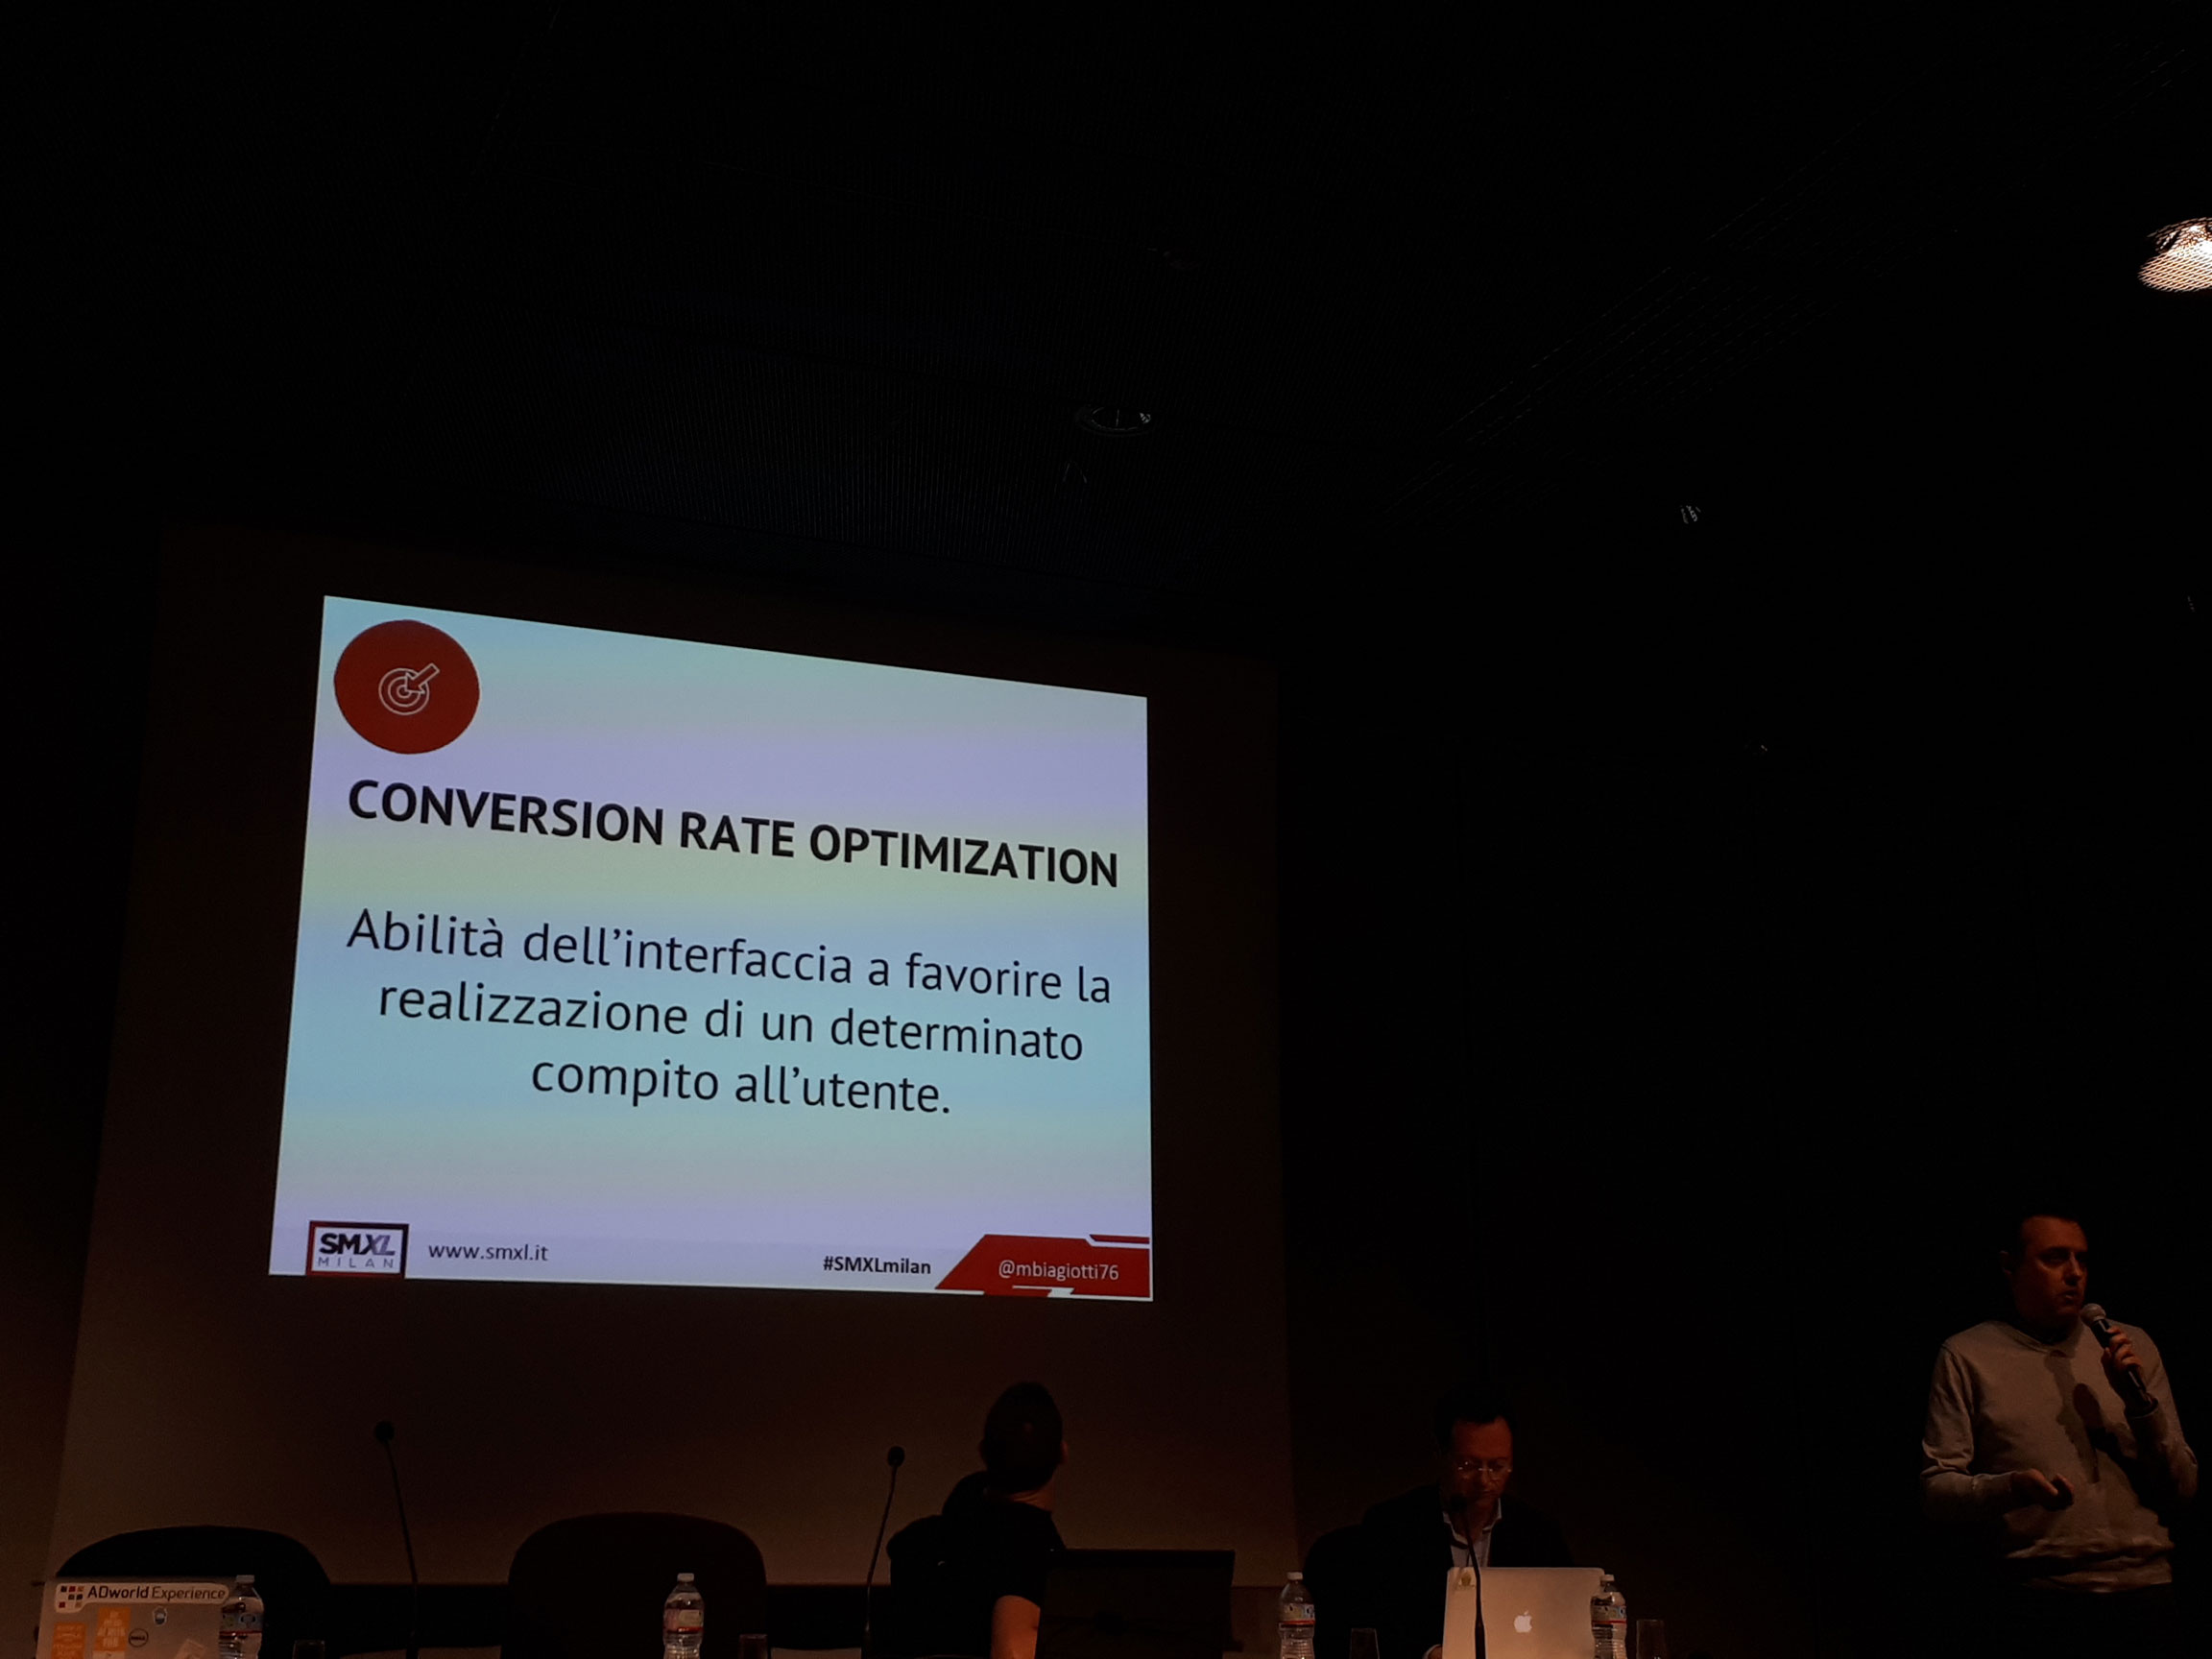 Conversation-Rate-Optimization-Marco-Biagiotti-